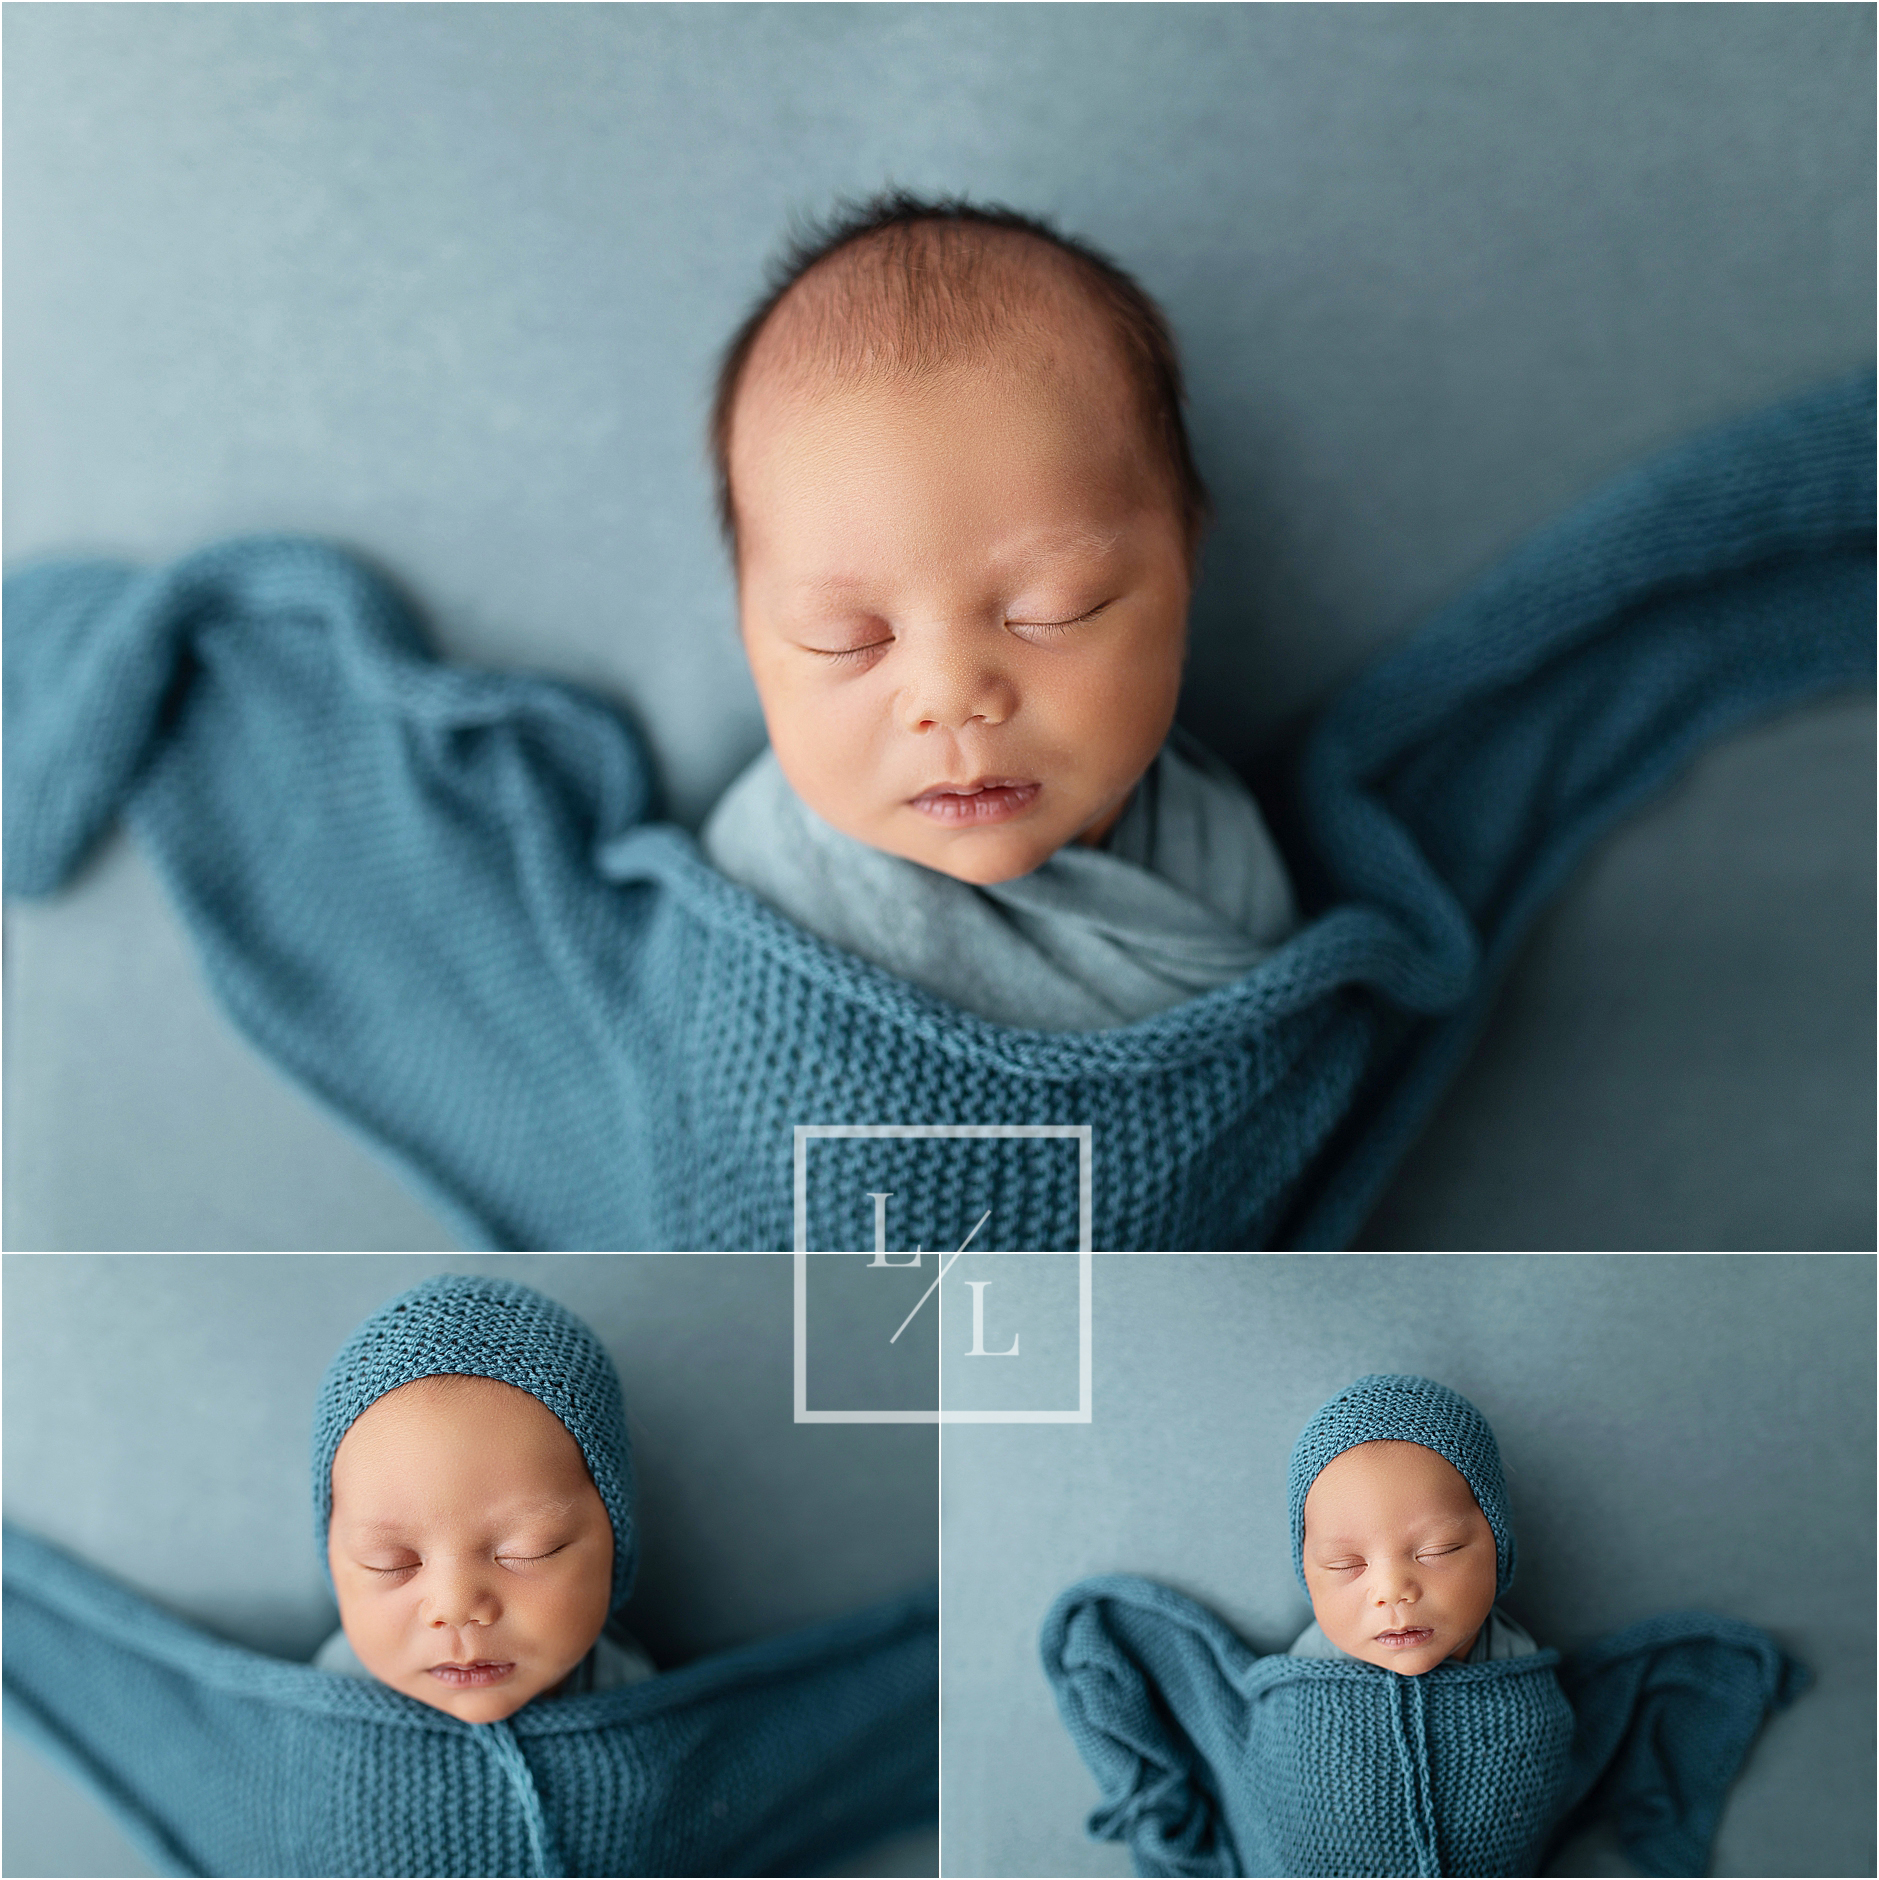 Newborn Baby Boy Pictures on Teal Backdrop.jpg